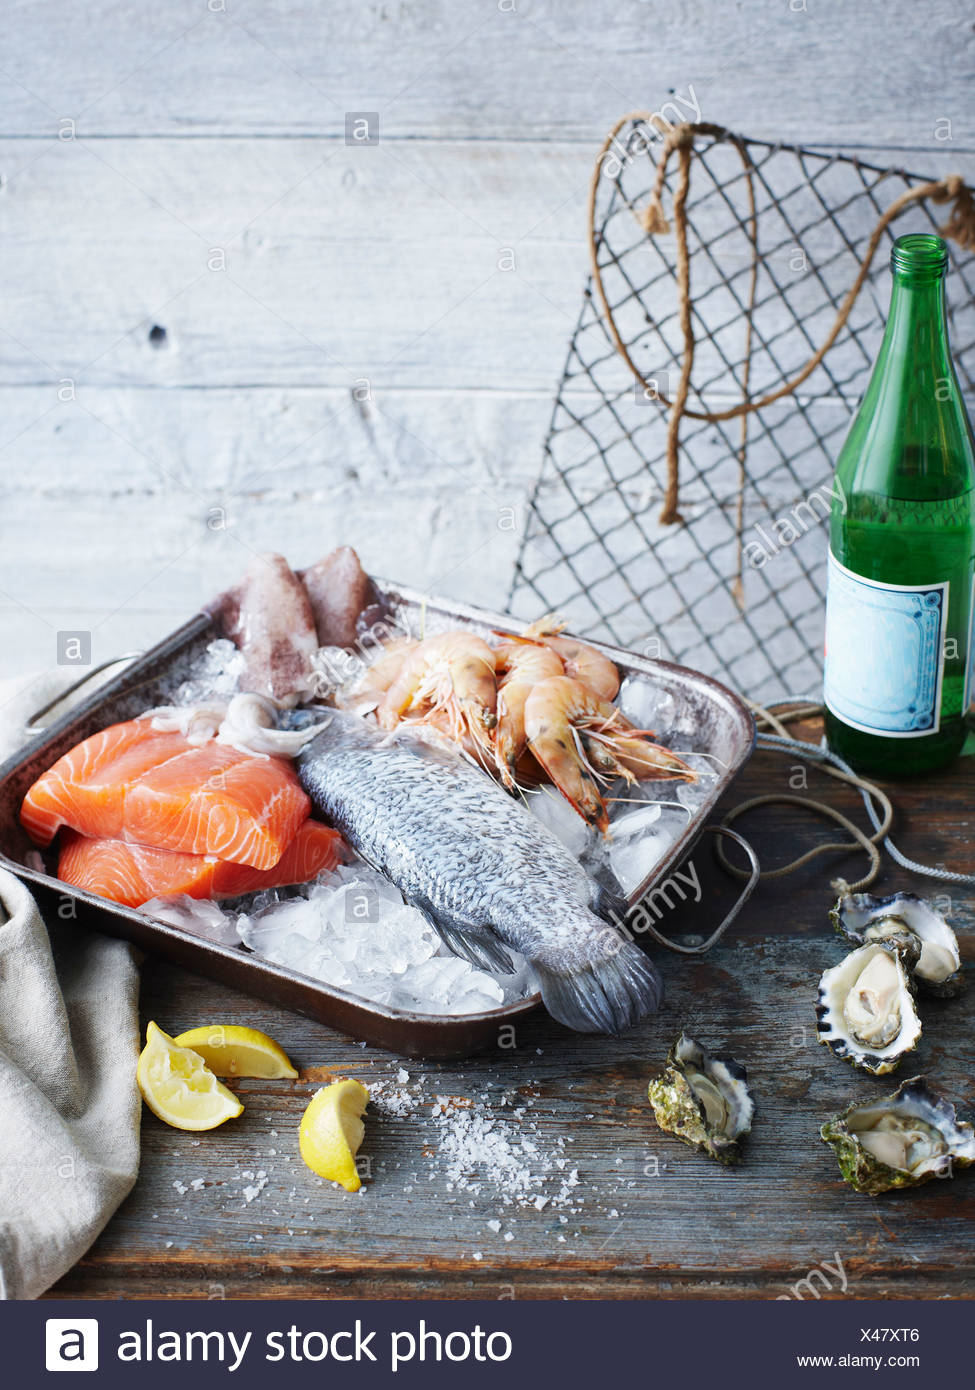 Tray of ice with fish and prawns - Stock Image